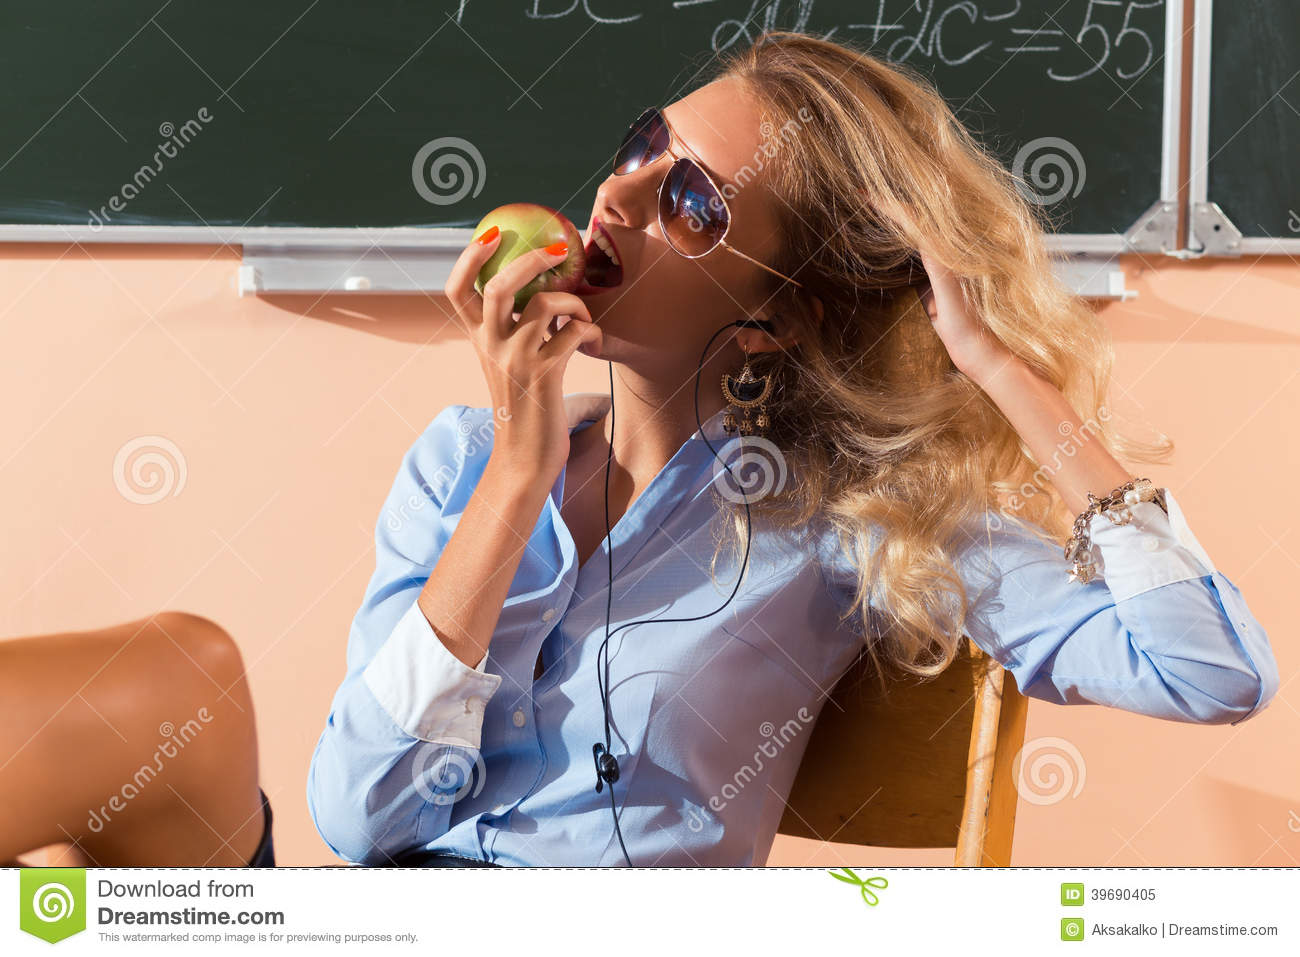 Beautiful Young Sexy Teacher Stock Photo - Image: 39690405: http://www.dreamstime.com/royalty-free-stock-photo-beautiful-young-sexy-teacher-resting-classes-image39690405